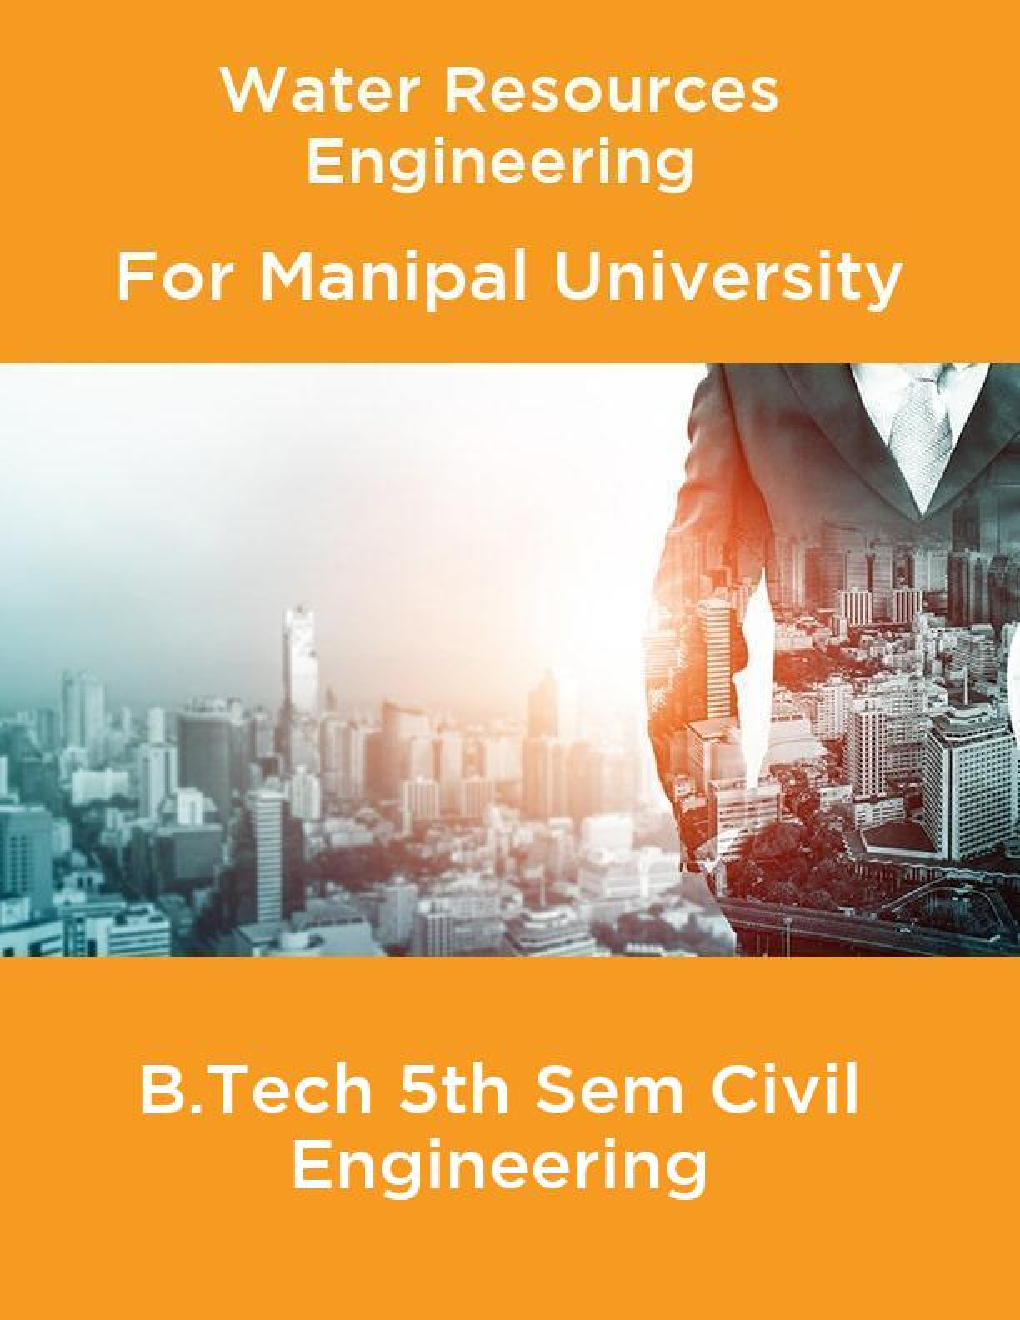 Water Resources Engineering For Manipal University B.Tech 5th Sem Civil Engineering - Page 1